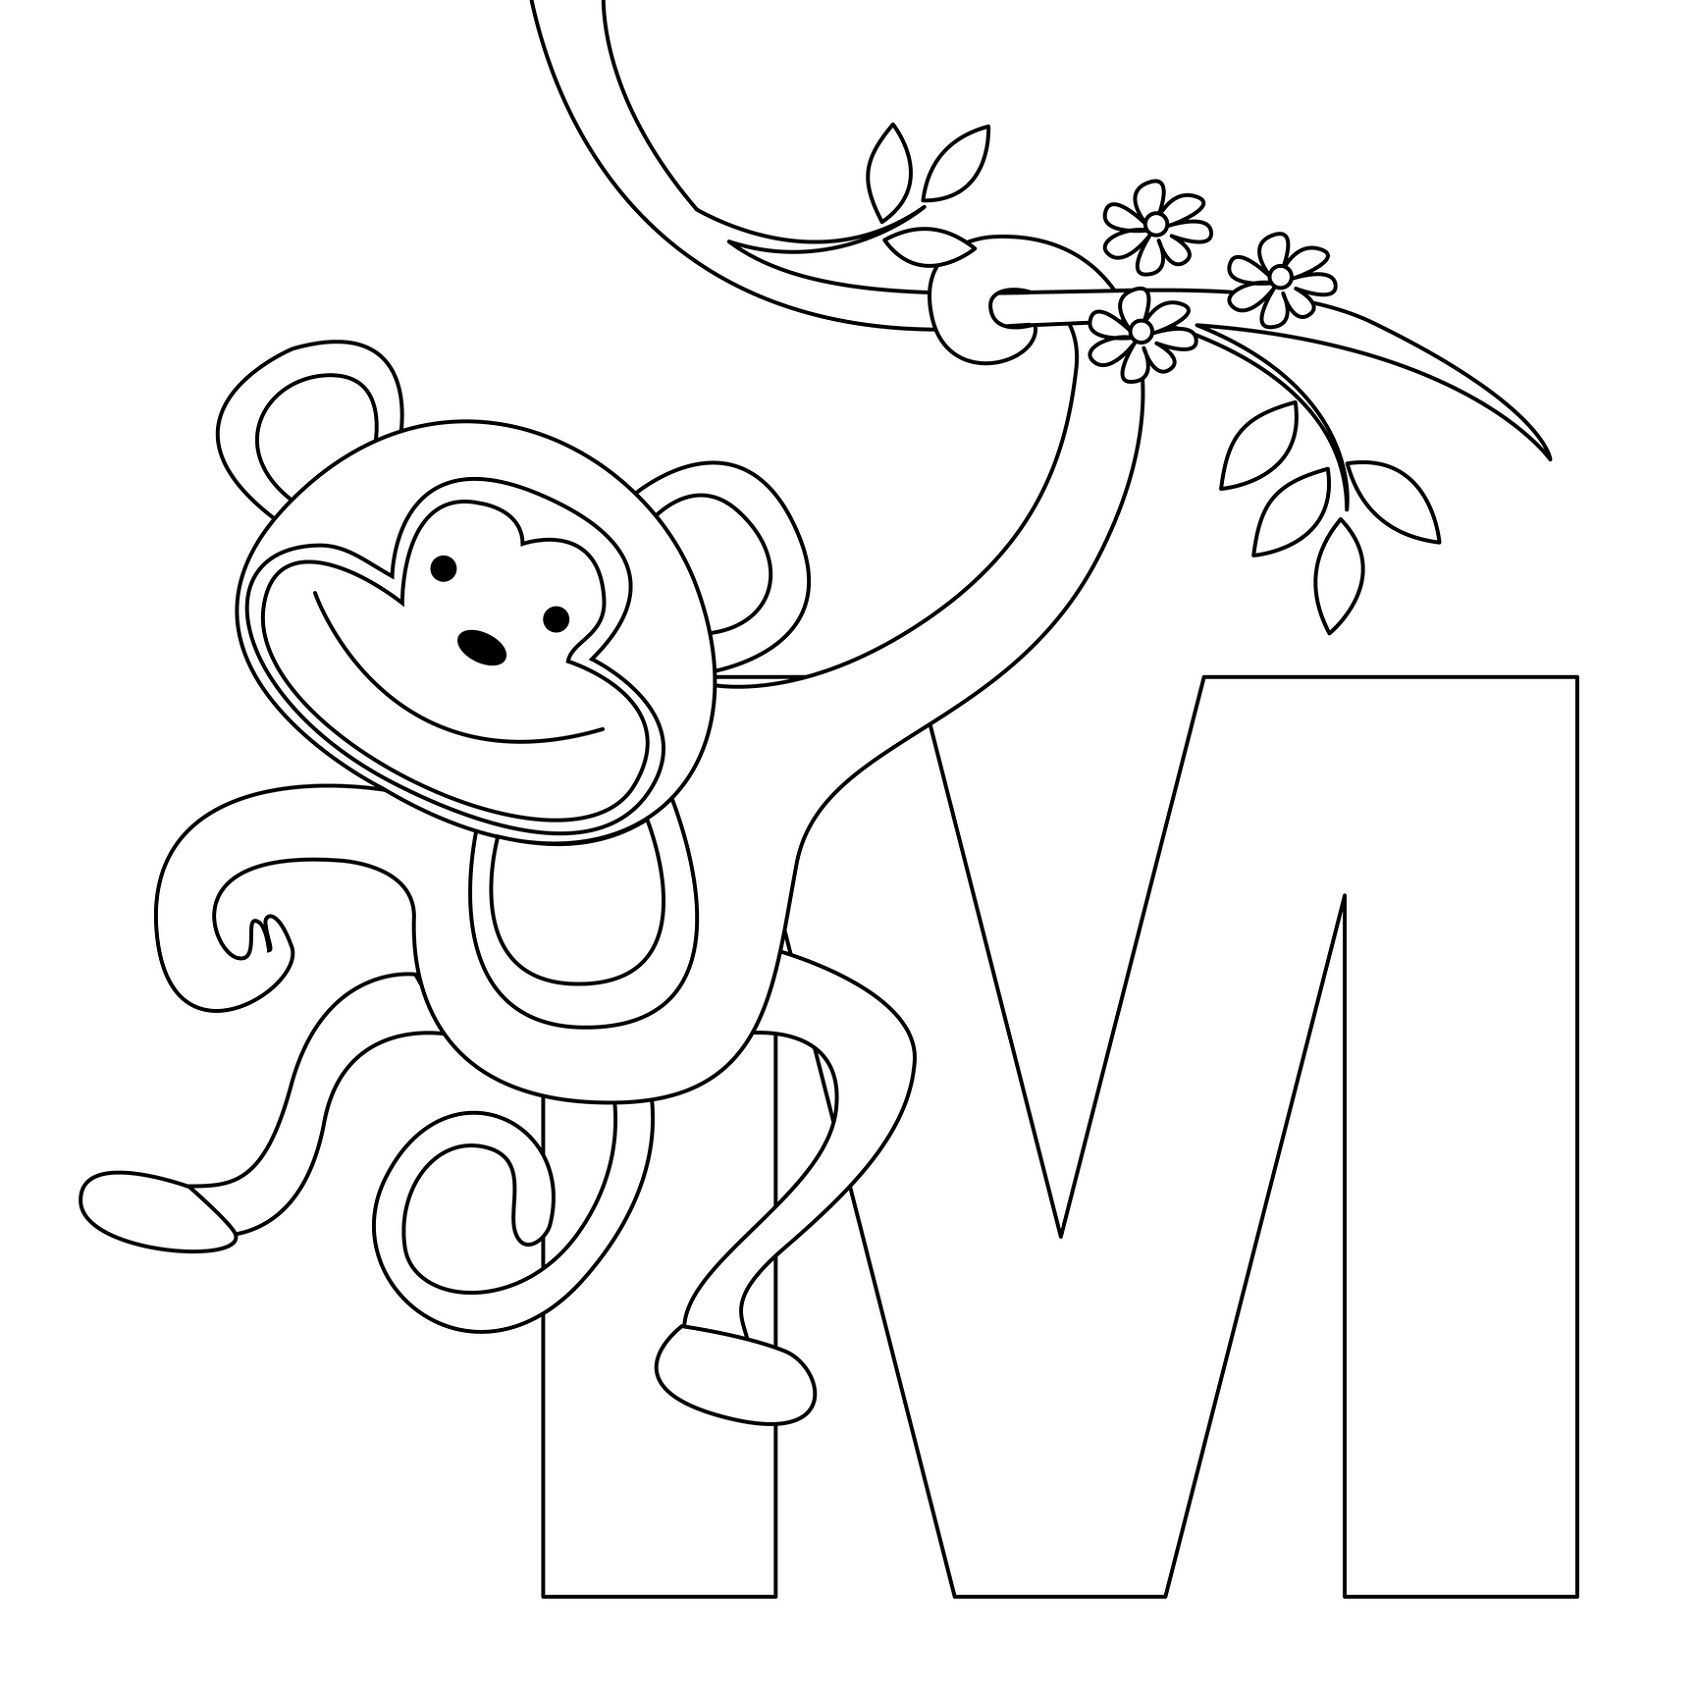 Alphabet m coloring pages for toddlers